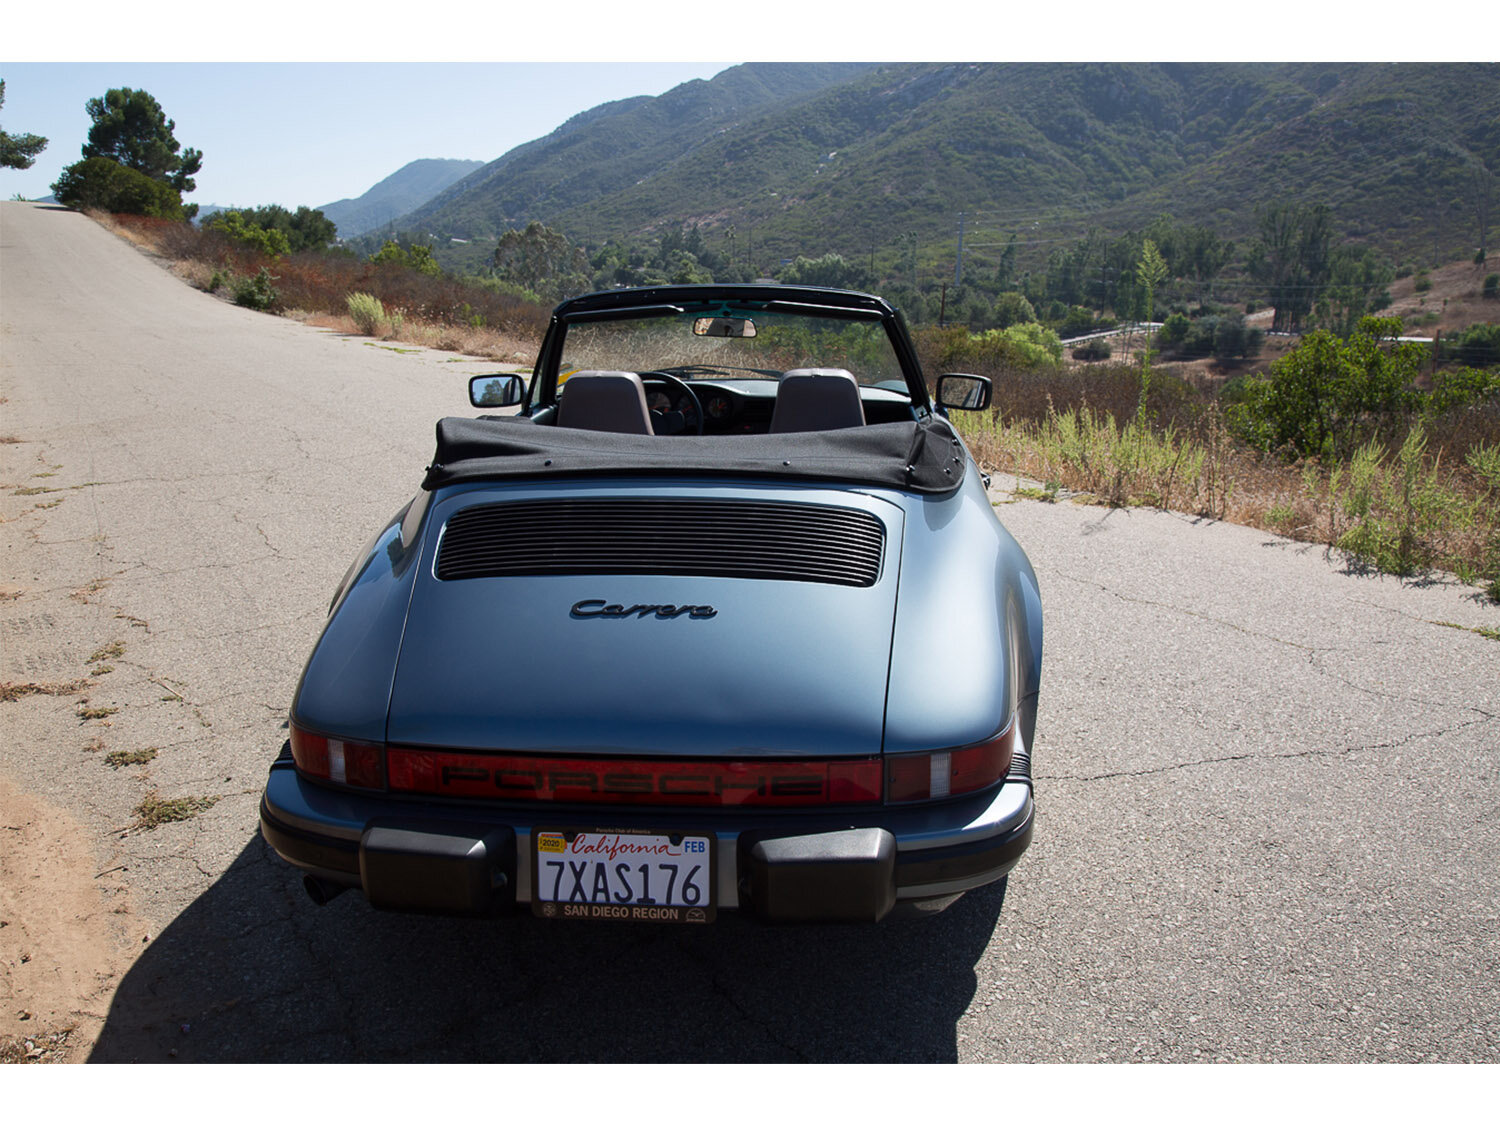 1984-carrera-cabriolet-slate-blue-911-sc-for-sale-makellos-classics_0001s_0000s_0008_1B7A6637.jpg